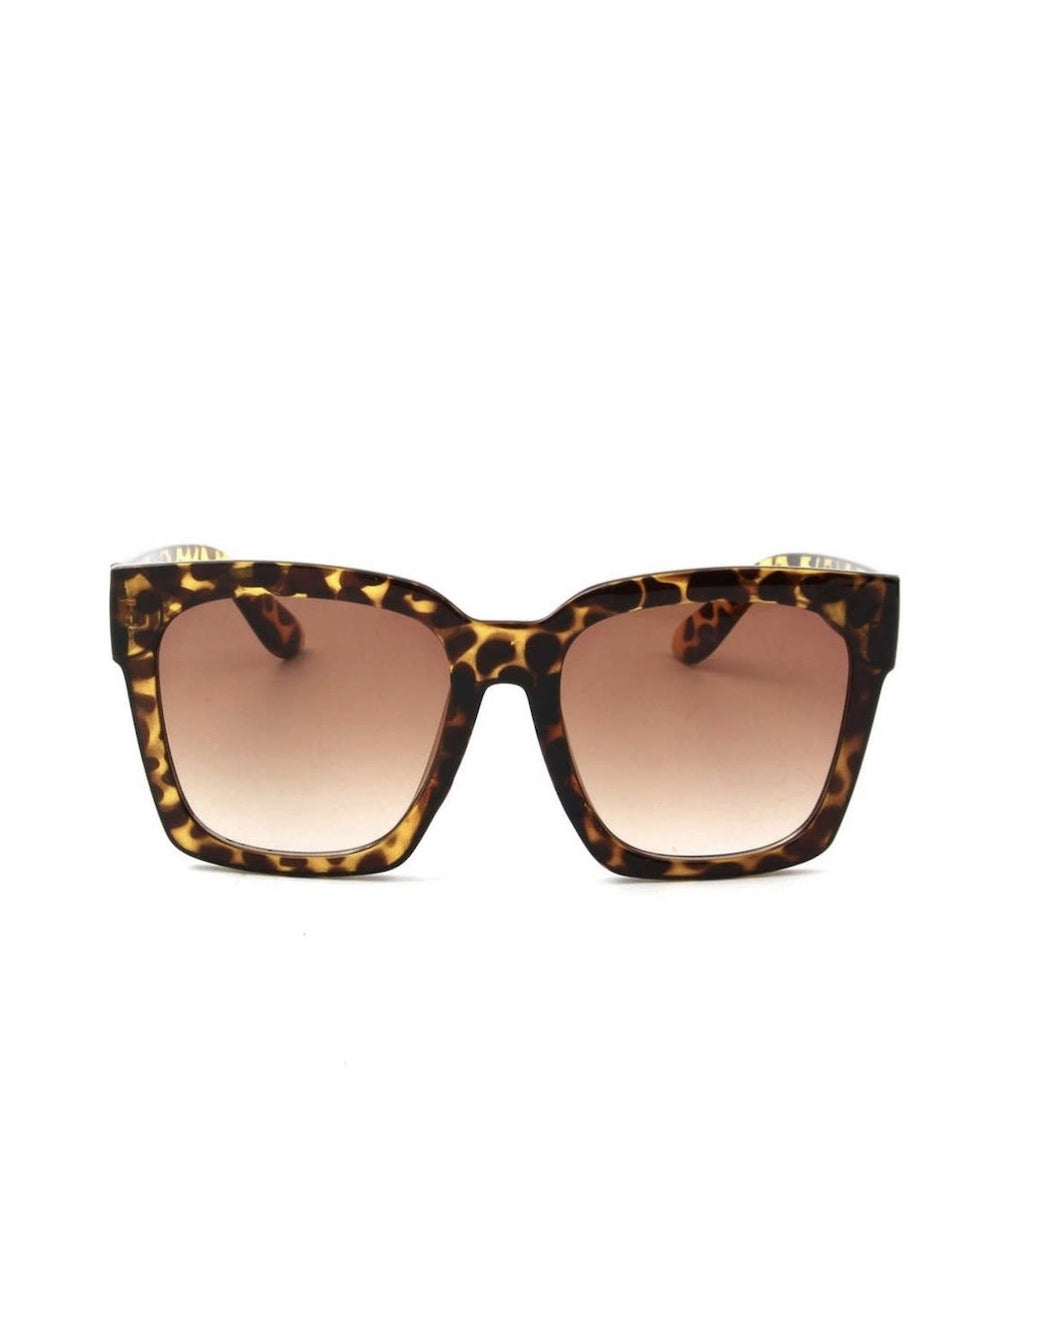 SQUARE OVERSIZED SUNGLASSES TORTOISE